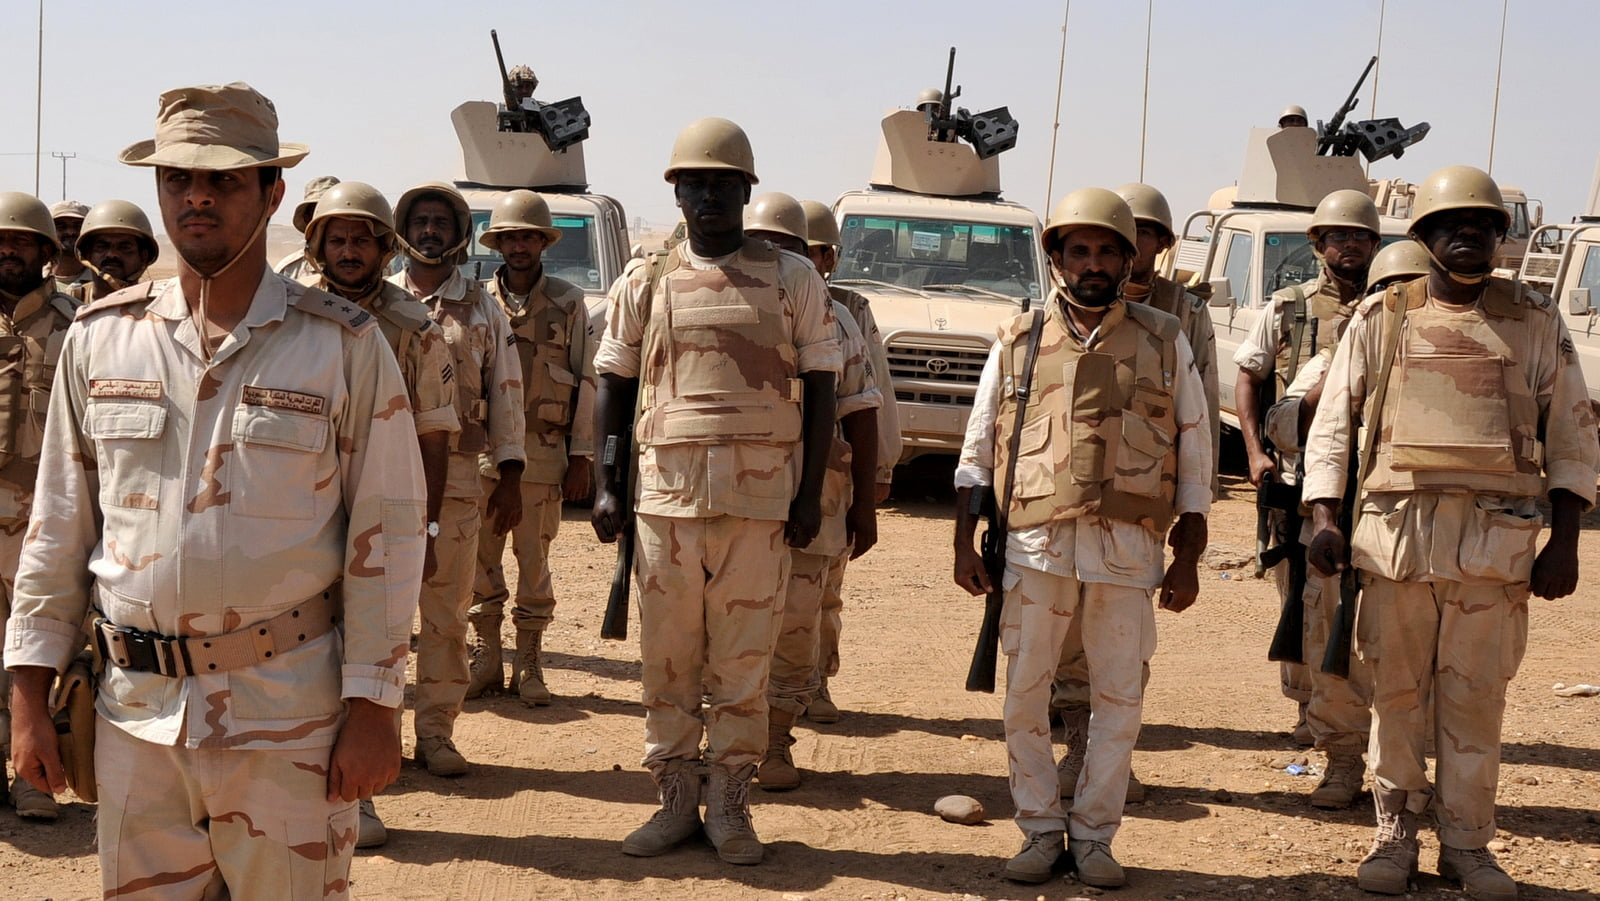 Saudi soldiers stand in formation at their base in the southern province of Jizan, near the border with Yemen, Saudi Arabia, Nov. 8, 2009. Photo | AP